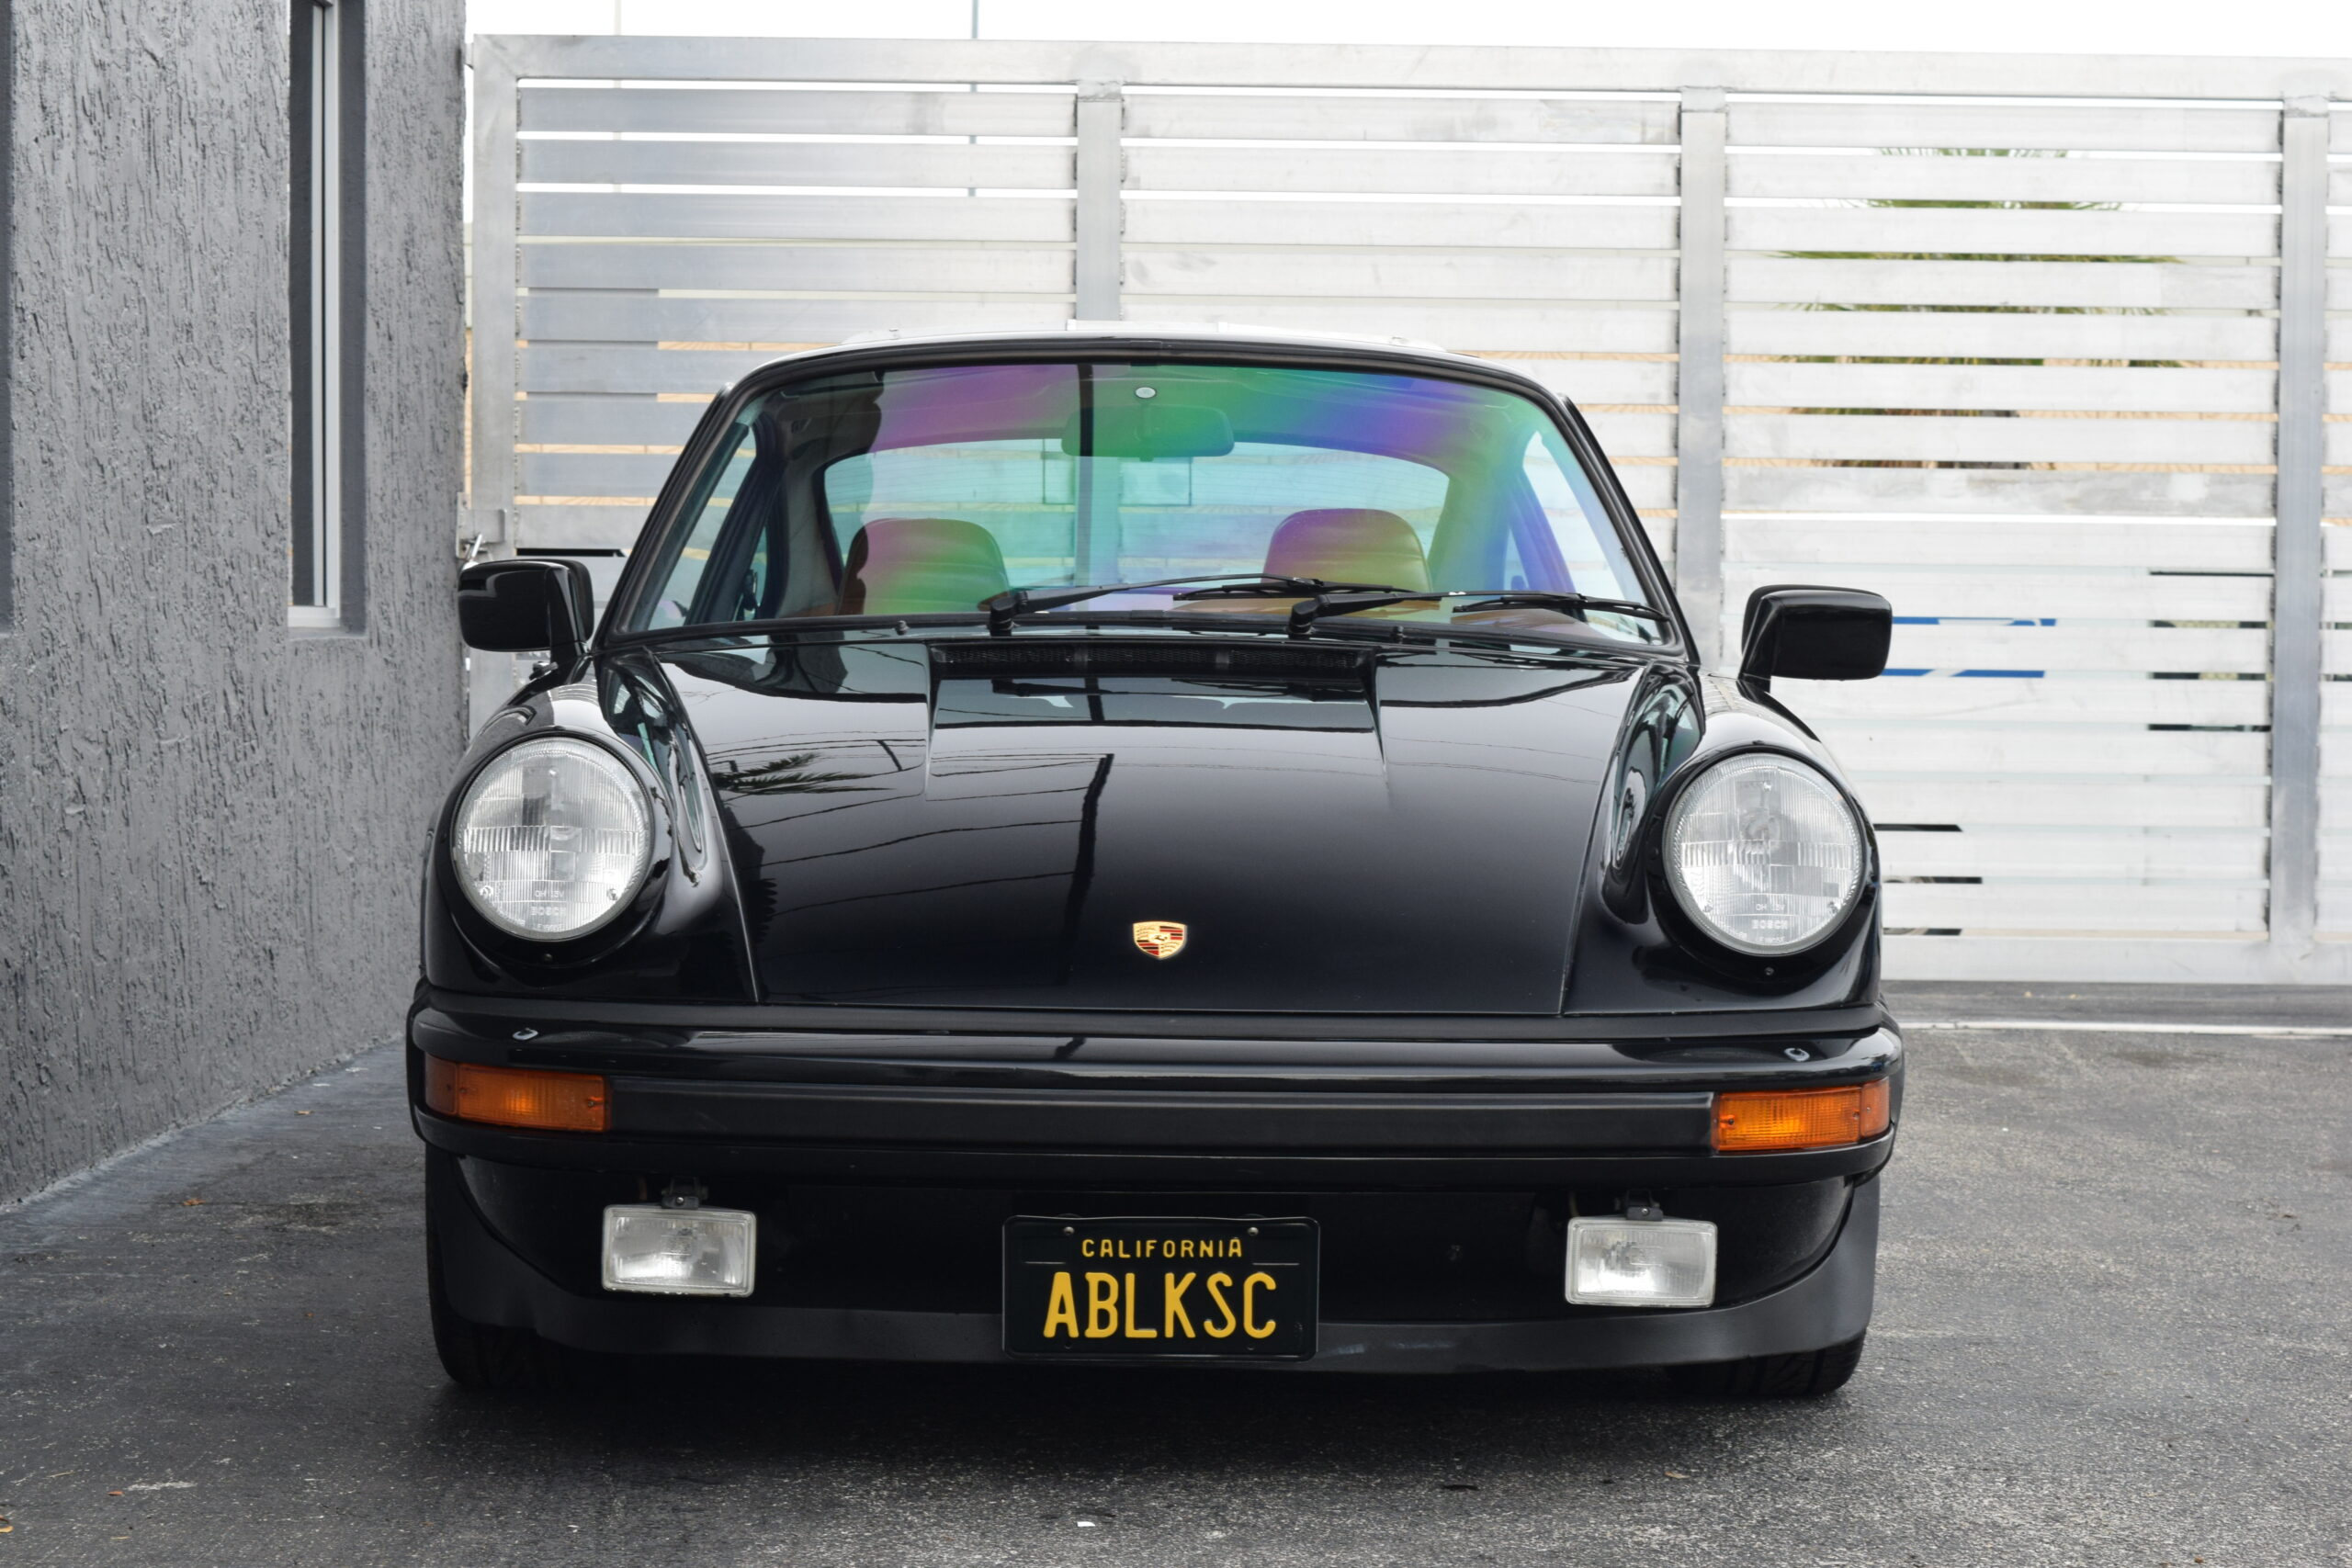 1983 Porsche 911 911 SC One owner for most of its life, Black California Customs Plates, CA Smog valid